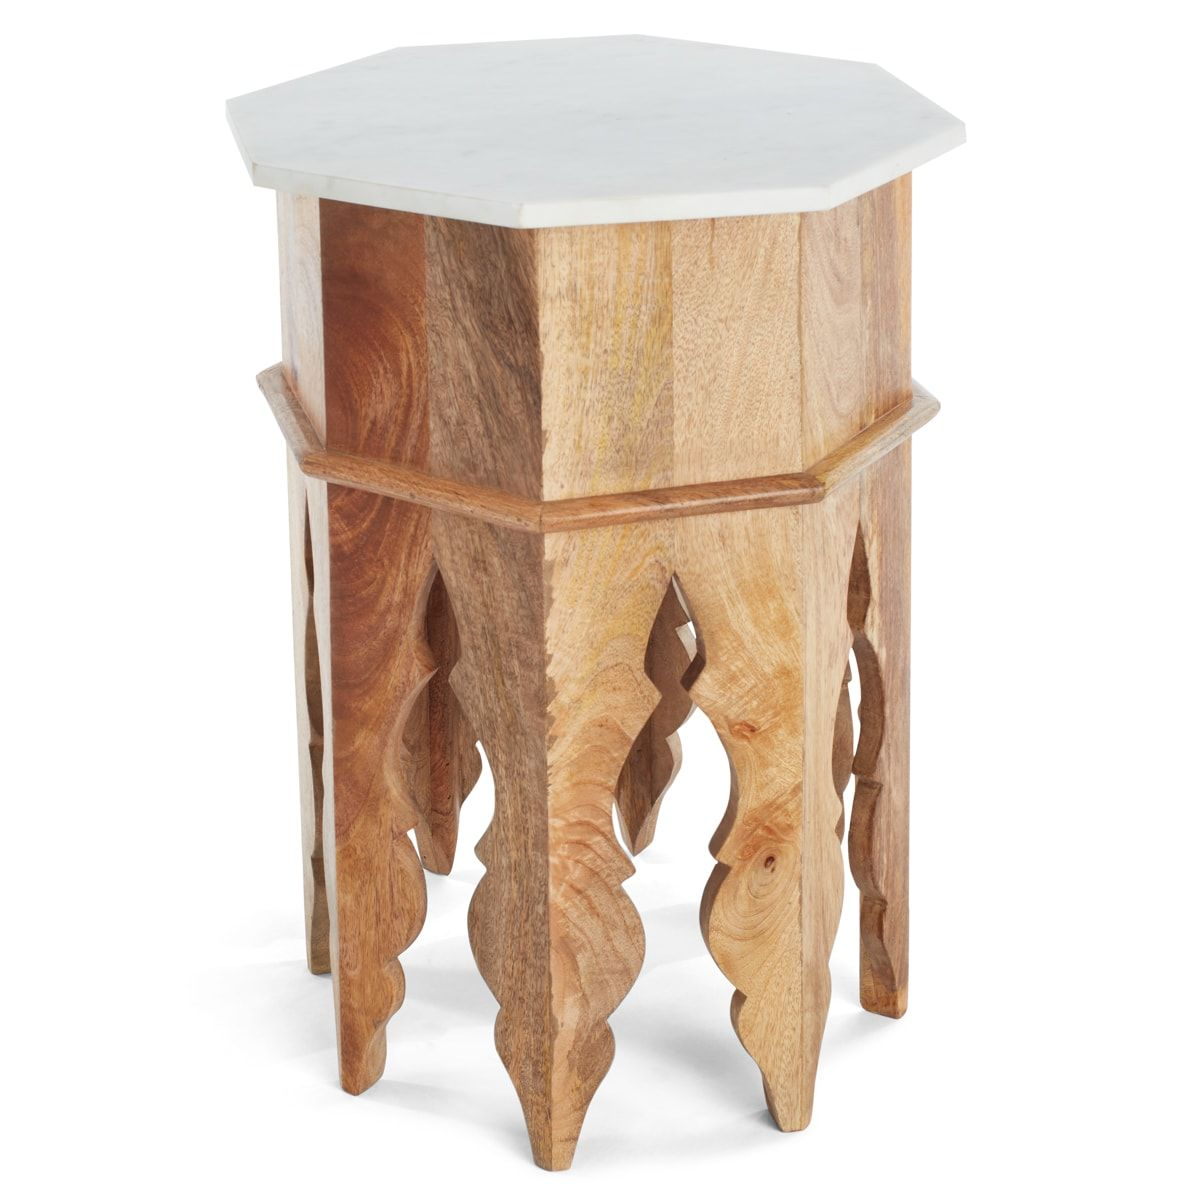 Marble And Wood Moroccan Side Table Side Table Wood Moroccan Side Table Side Table